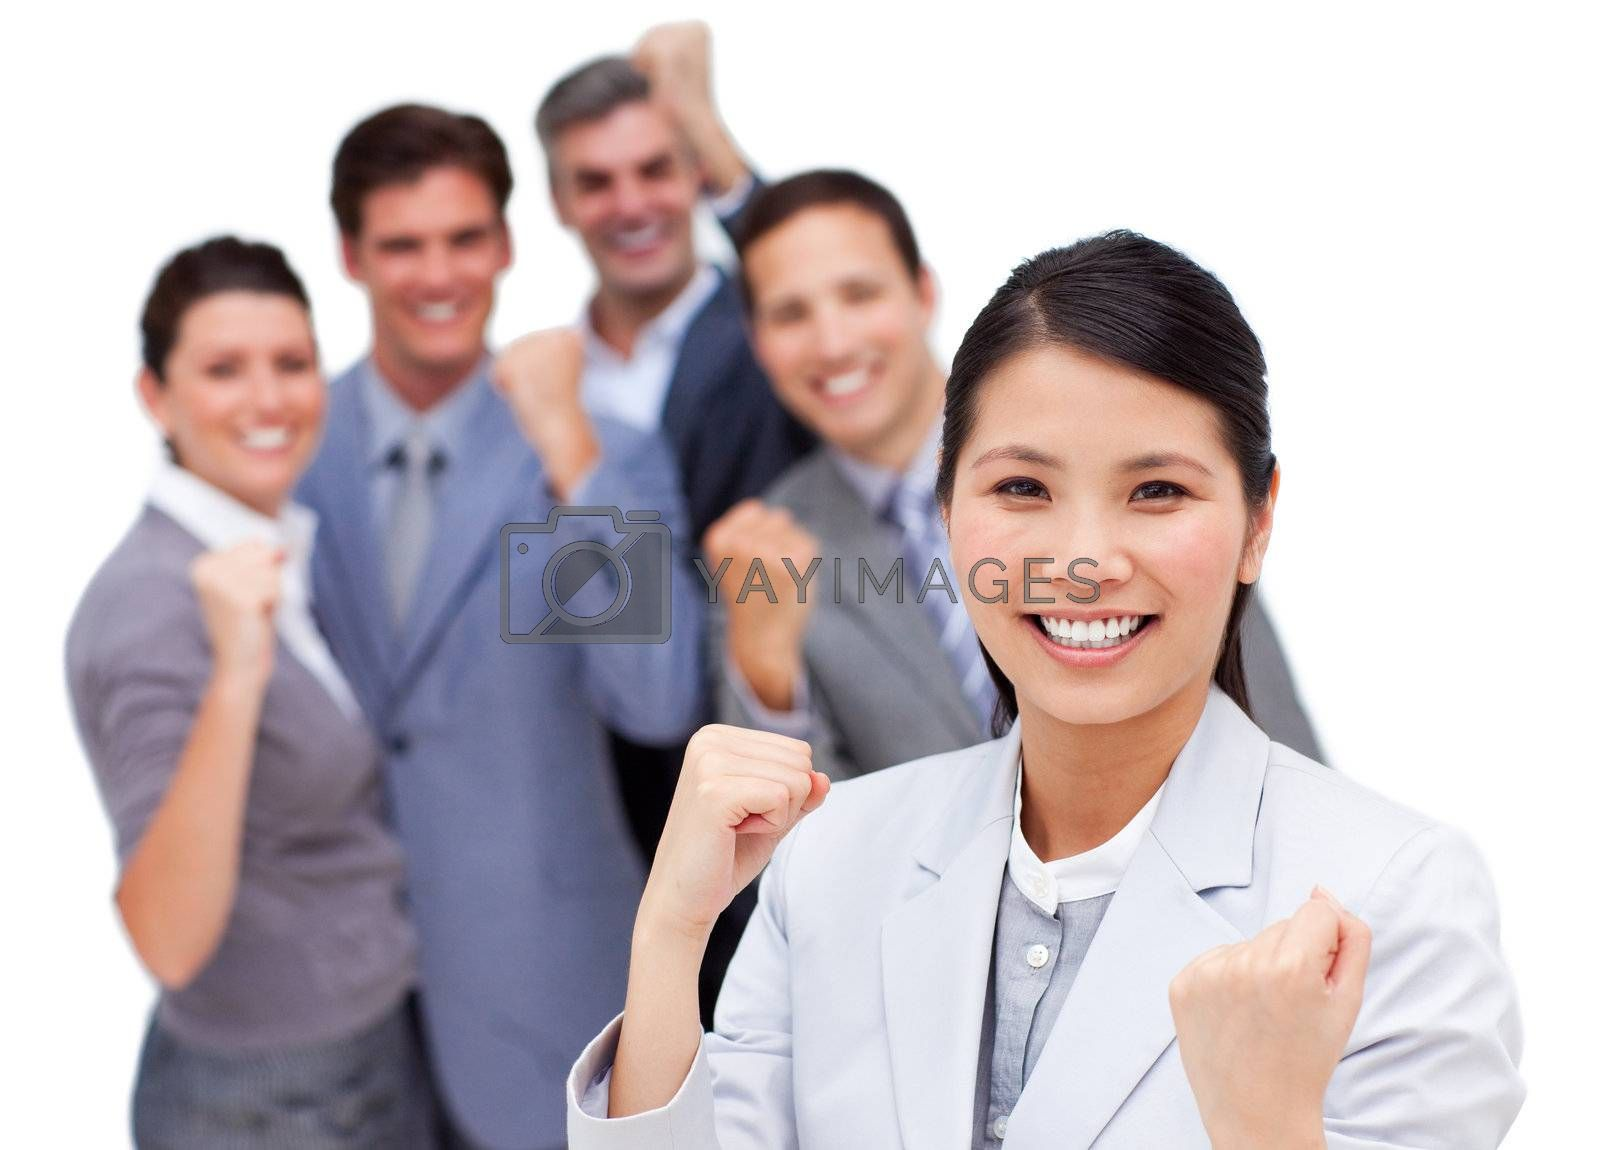 Multi-ethnic business team punching the air in celebration by Wavebreakmedia